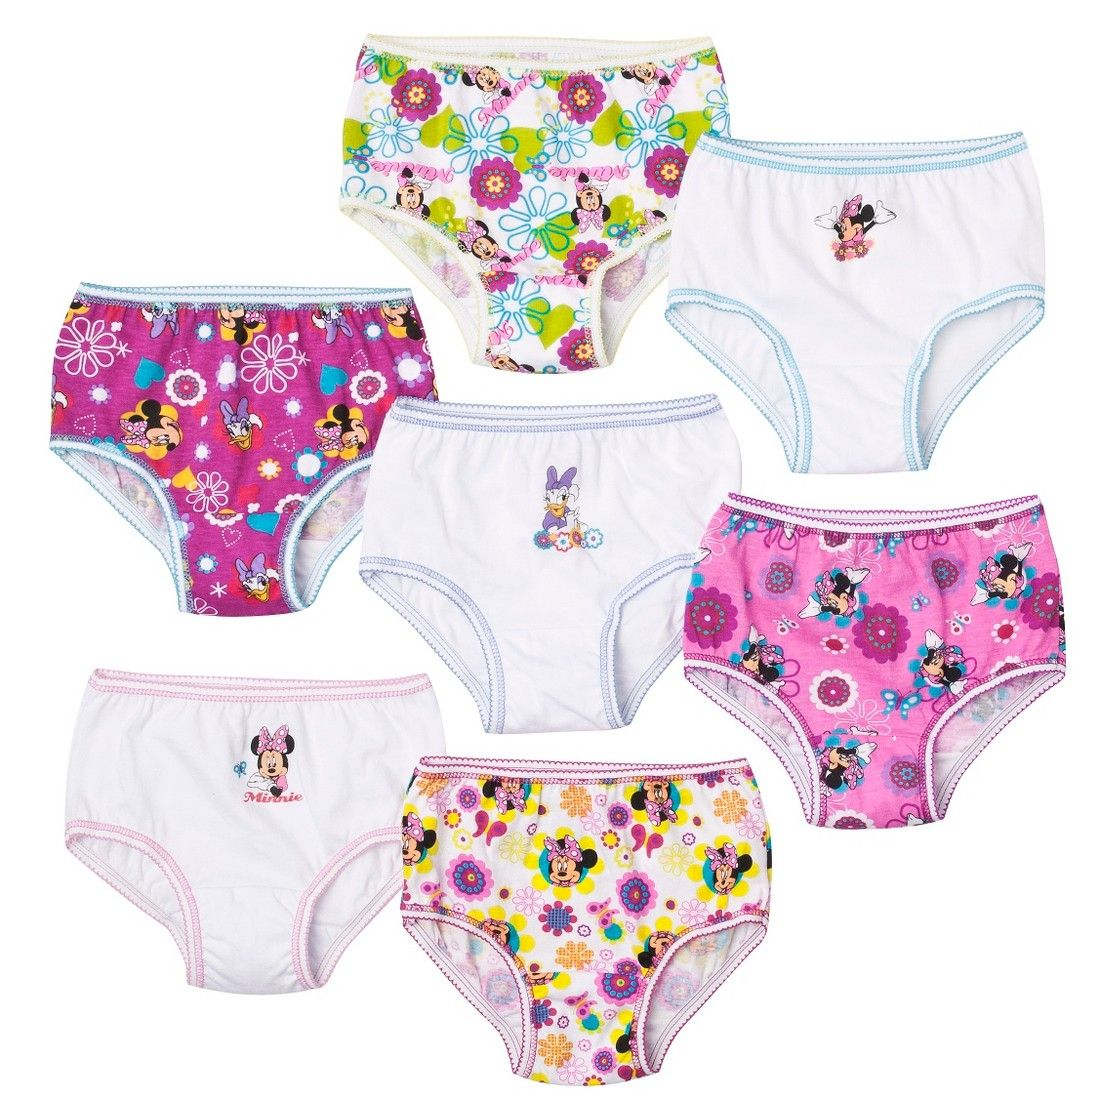 3T  4 5-6  7-8 10-12 NWT Gymboree Boys Briefs Seven Pack Underwear Size 2T